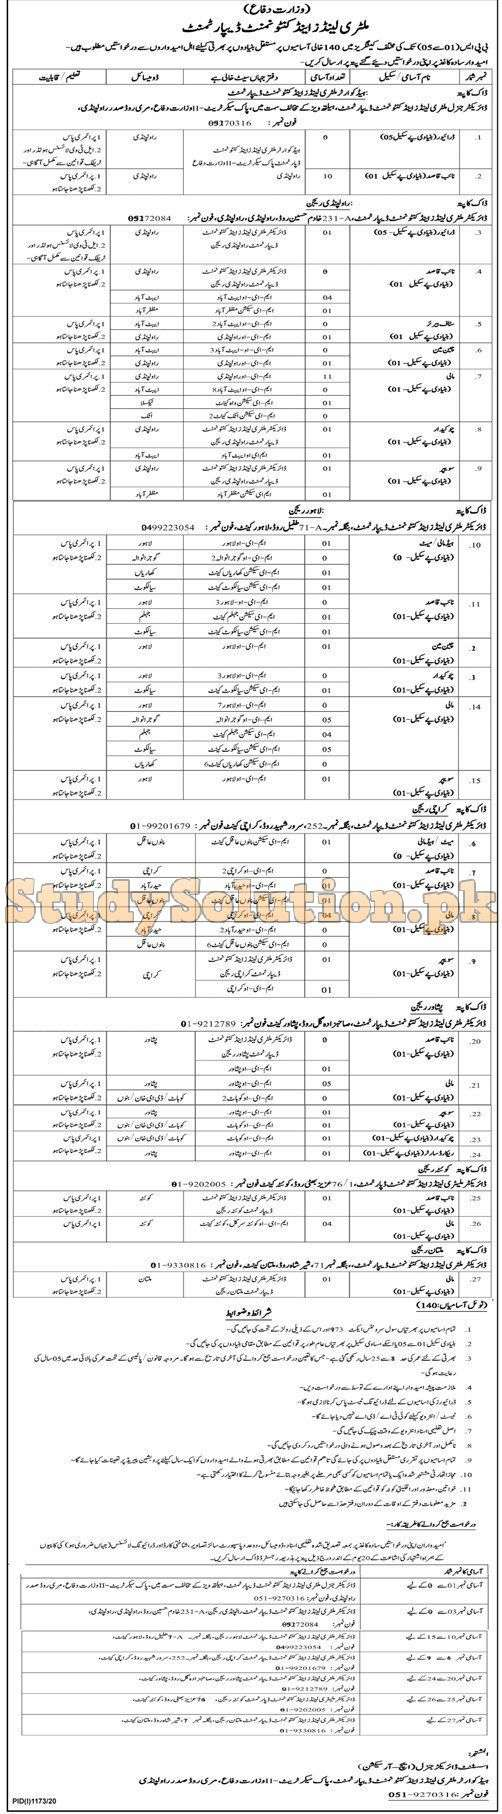 Military Lands and Cantonments Departments MLC Latest Jobs September 2020